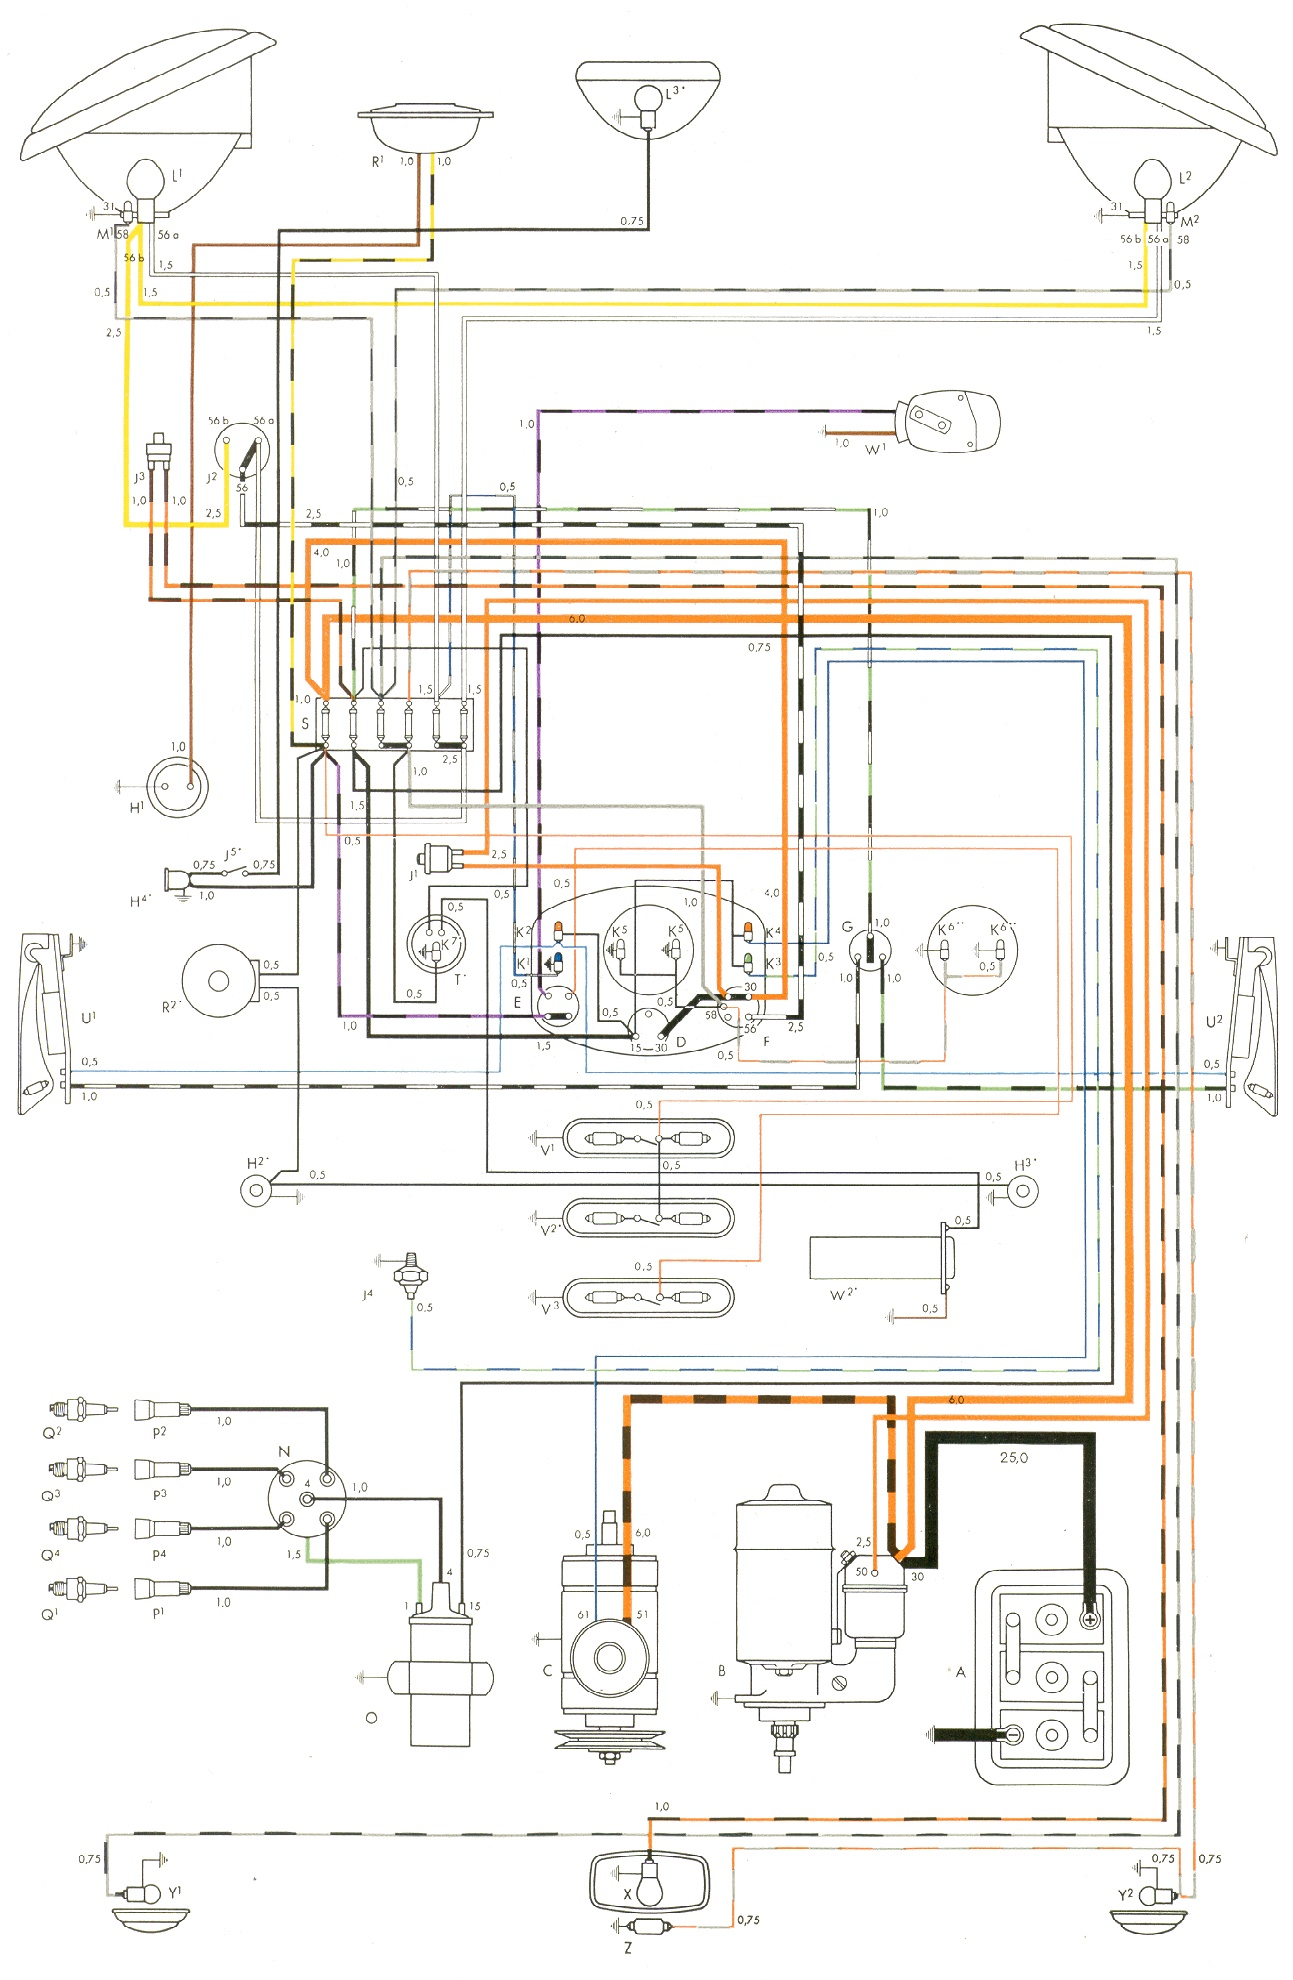 vw bus schematic wiring diagram specialtiesvw bus wiring diagram jet l 5 19 sg dbd de \\u2022vw bus wiring diagram